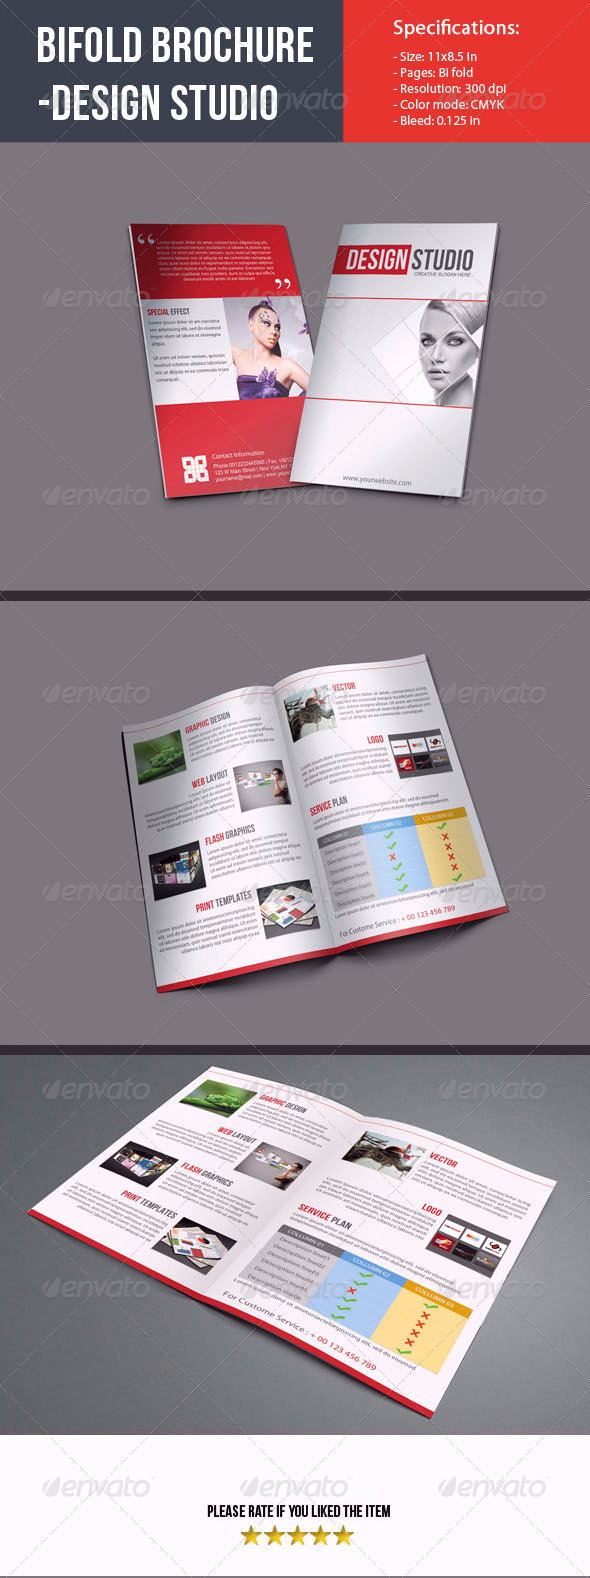 GraphicRiver Bifold Brochure For Design Studio 4977737